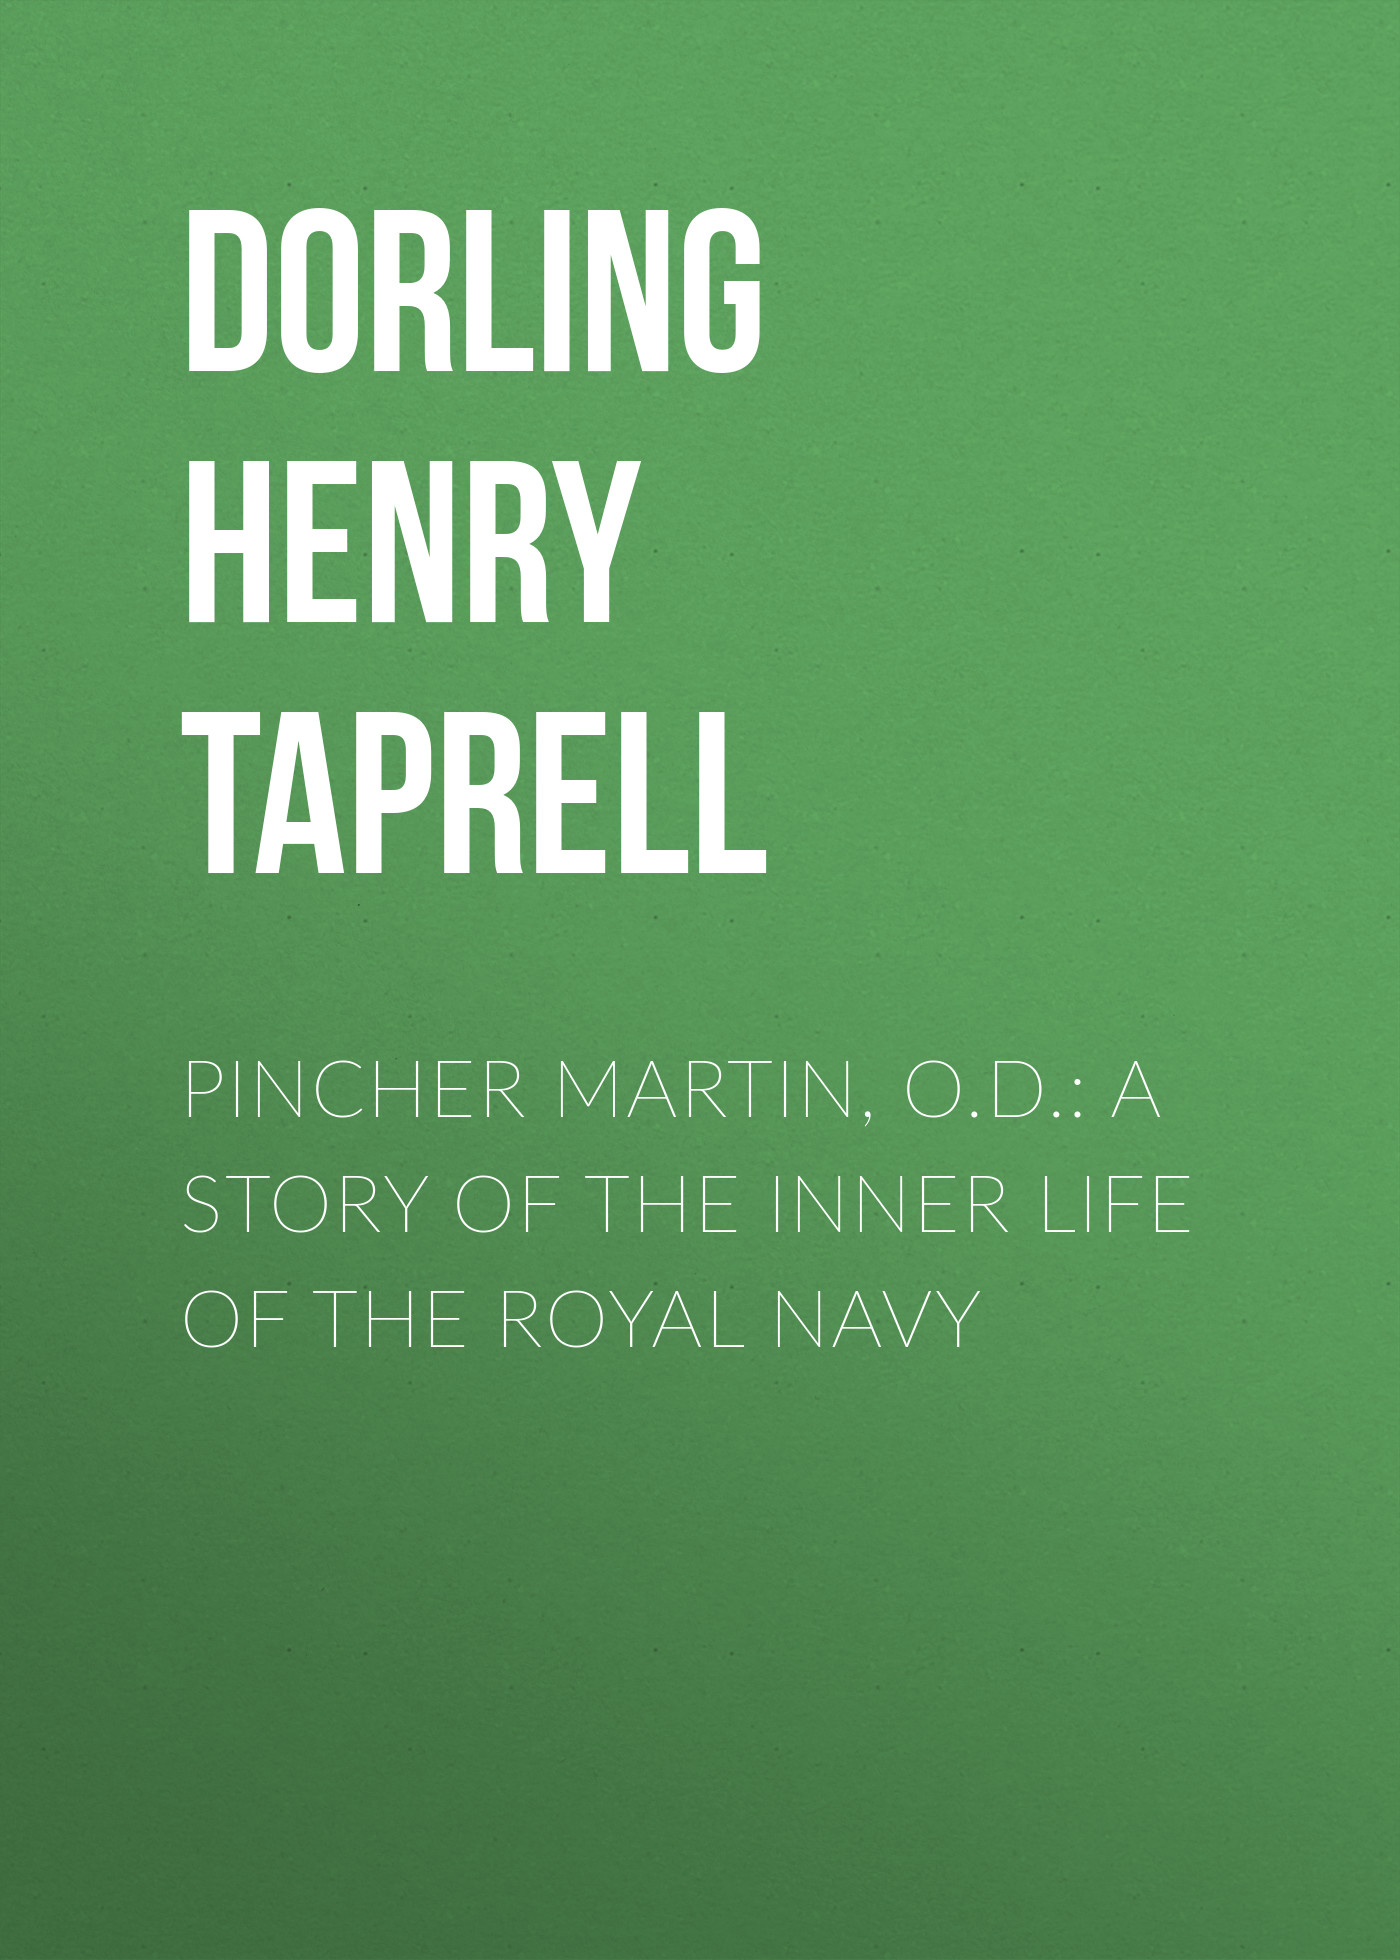 Dorling Henry Taprell Pincher Martin, O.D.: A Story of the Inner Life of the Royal Navy цены